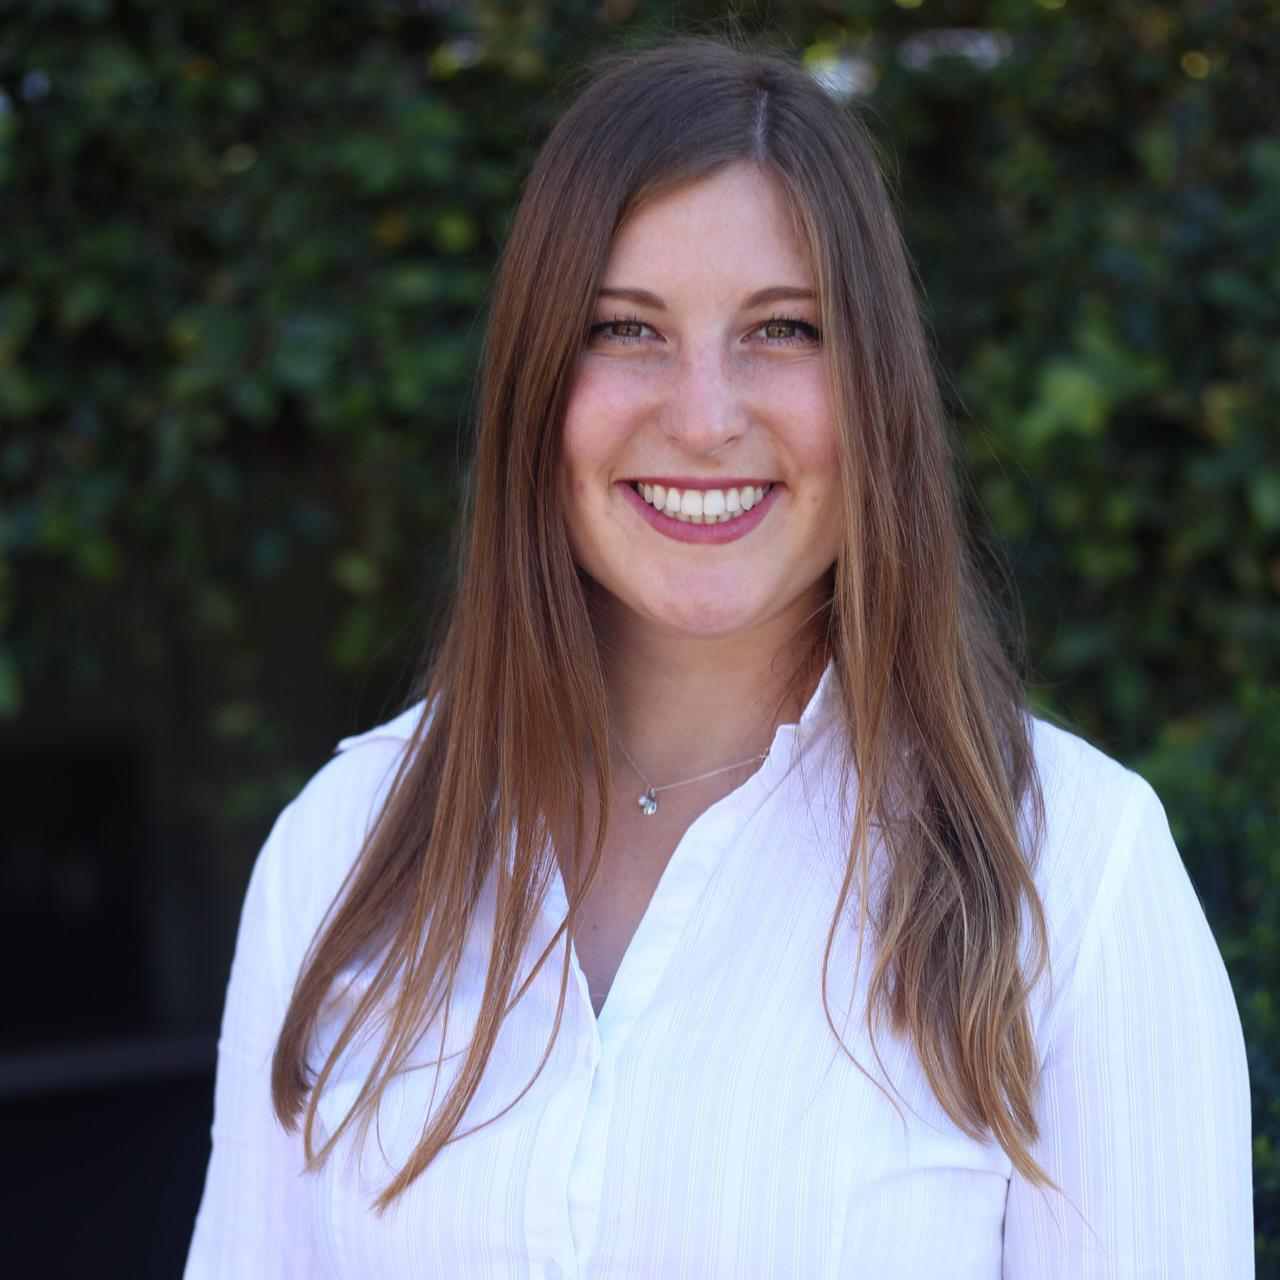 A Q&A with ASU Downtown Phoenix student body president Aly Perkins | ASU Student Life